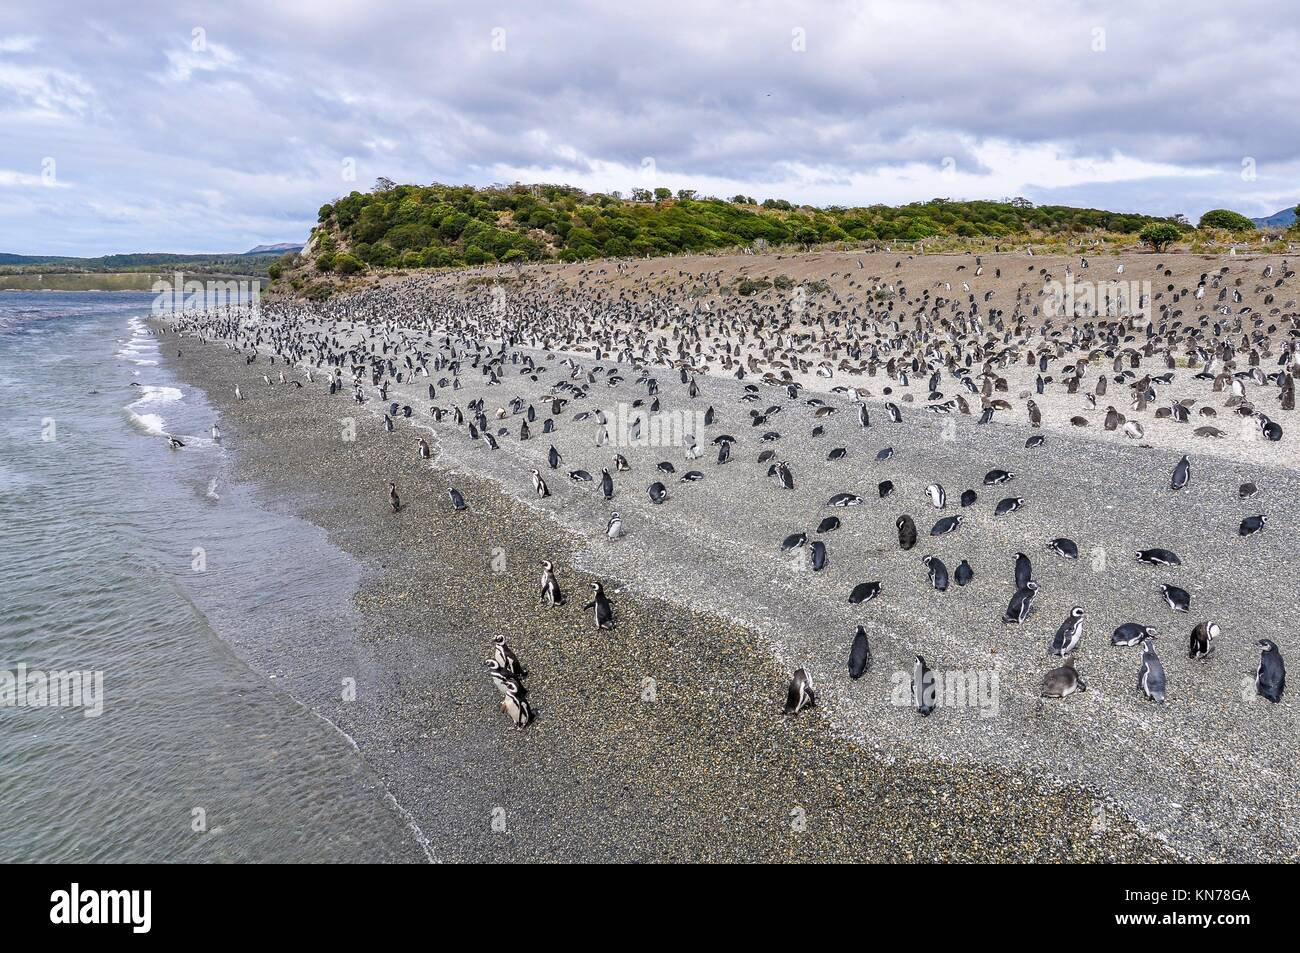 Island of Penguins in the Beagle Channel, Ushuaia, Argentina. - Stock Image